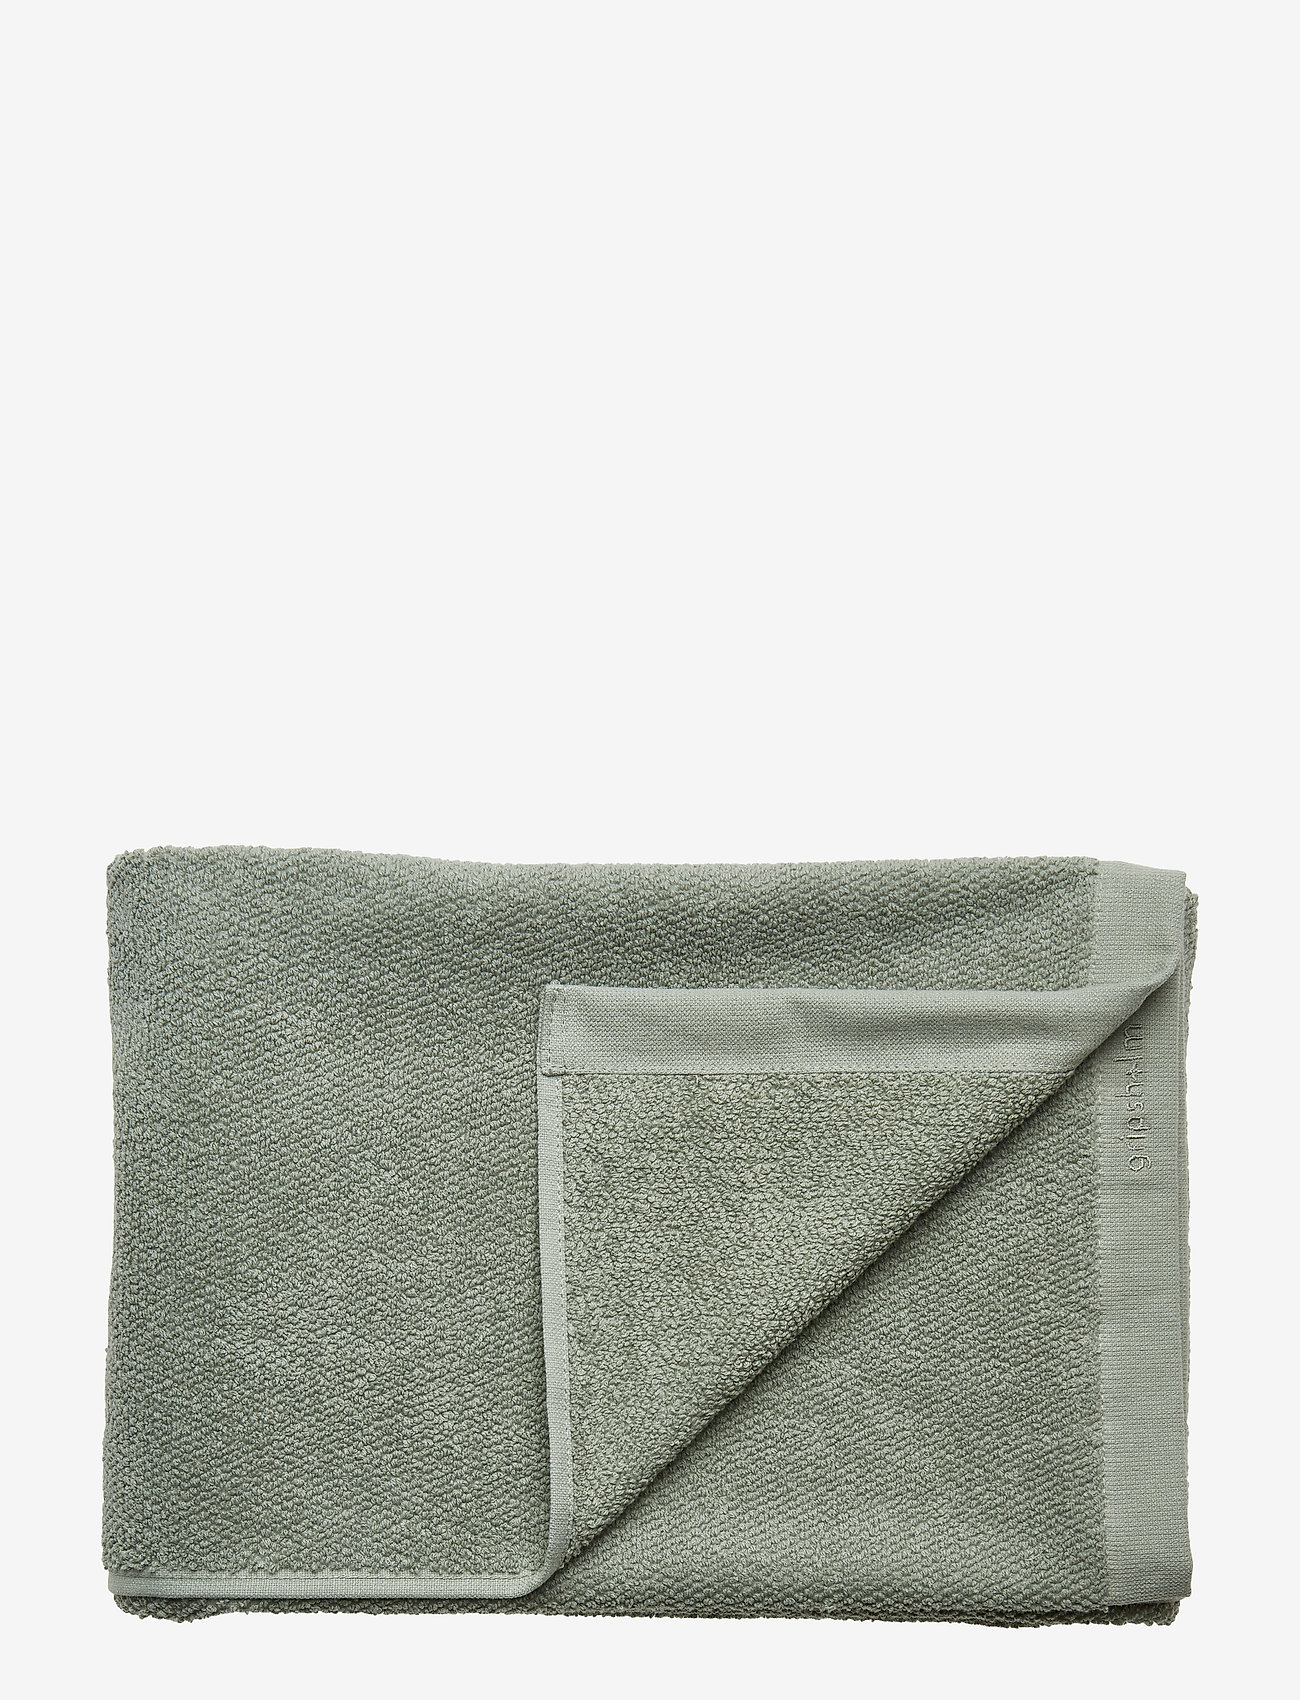 Gripsholm - BATH TOWEL COTTON LINEN - towels - lily green - 0